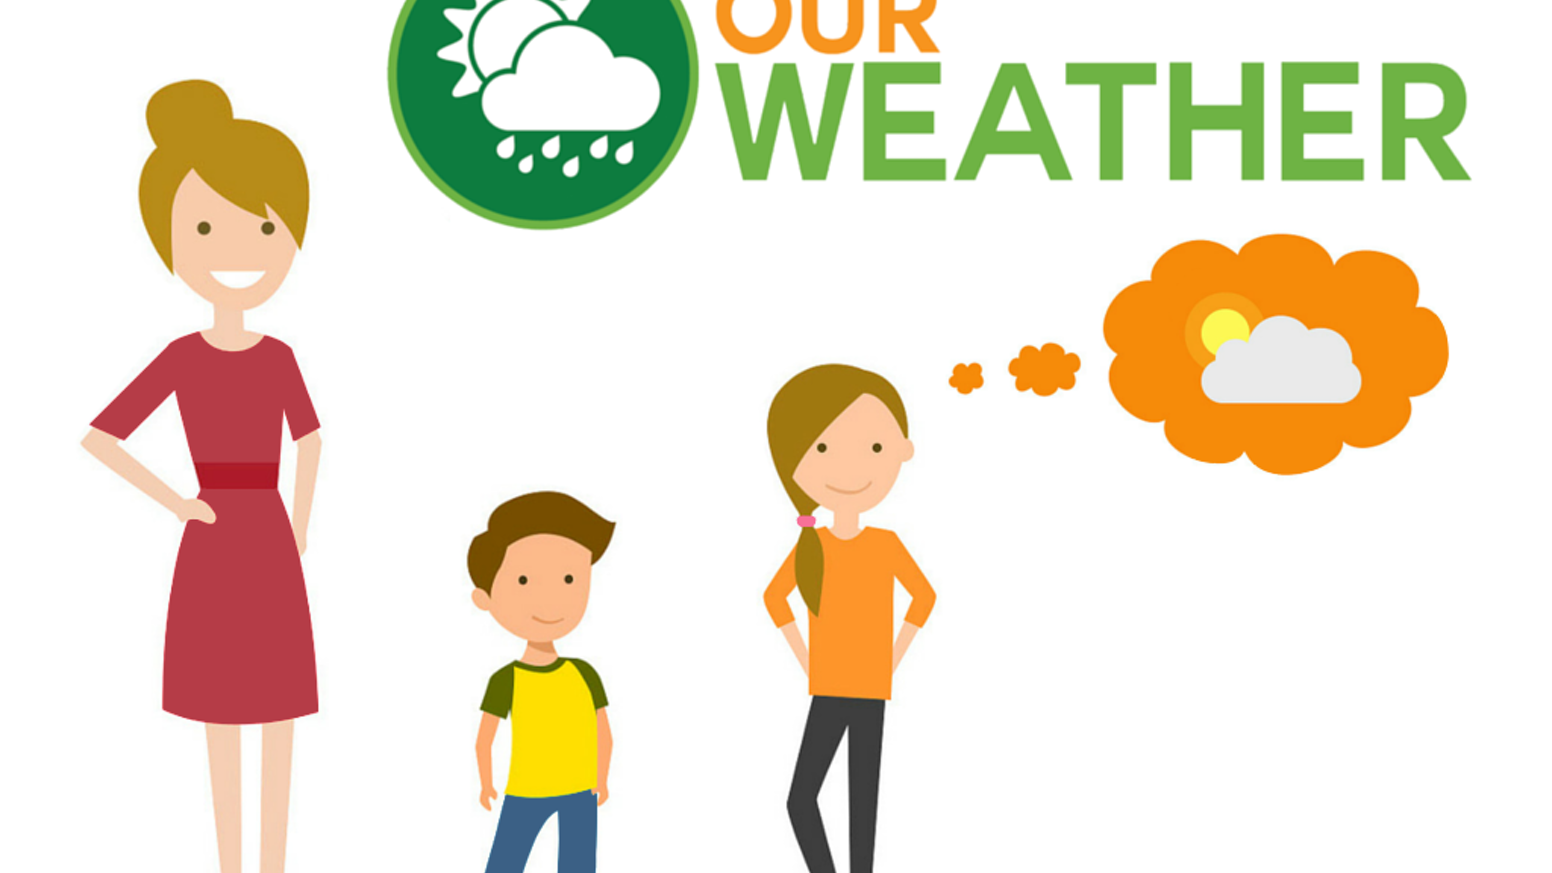 OurWeather is a connected open source weather kit that makes learning fun while curating curiosity and confidence in STEM principles.